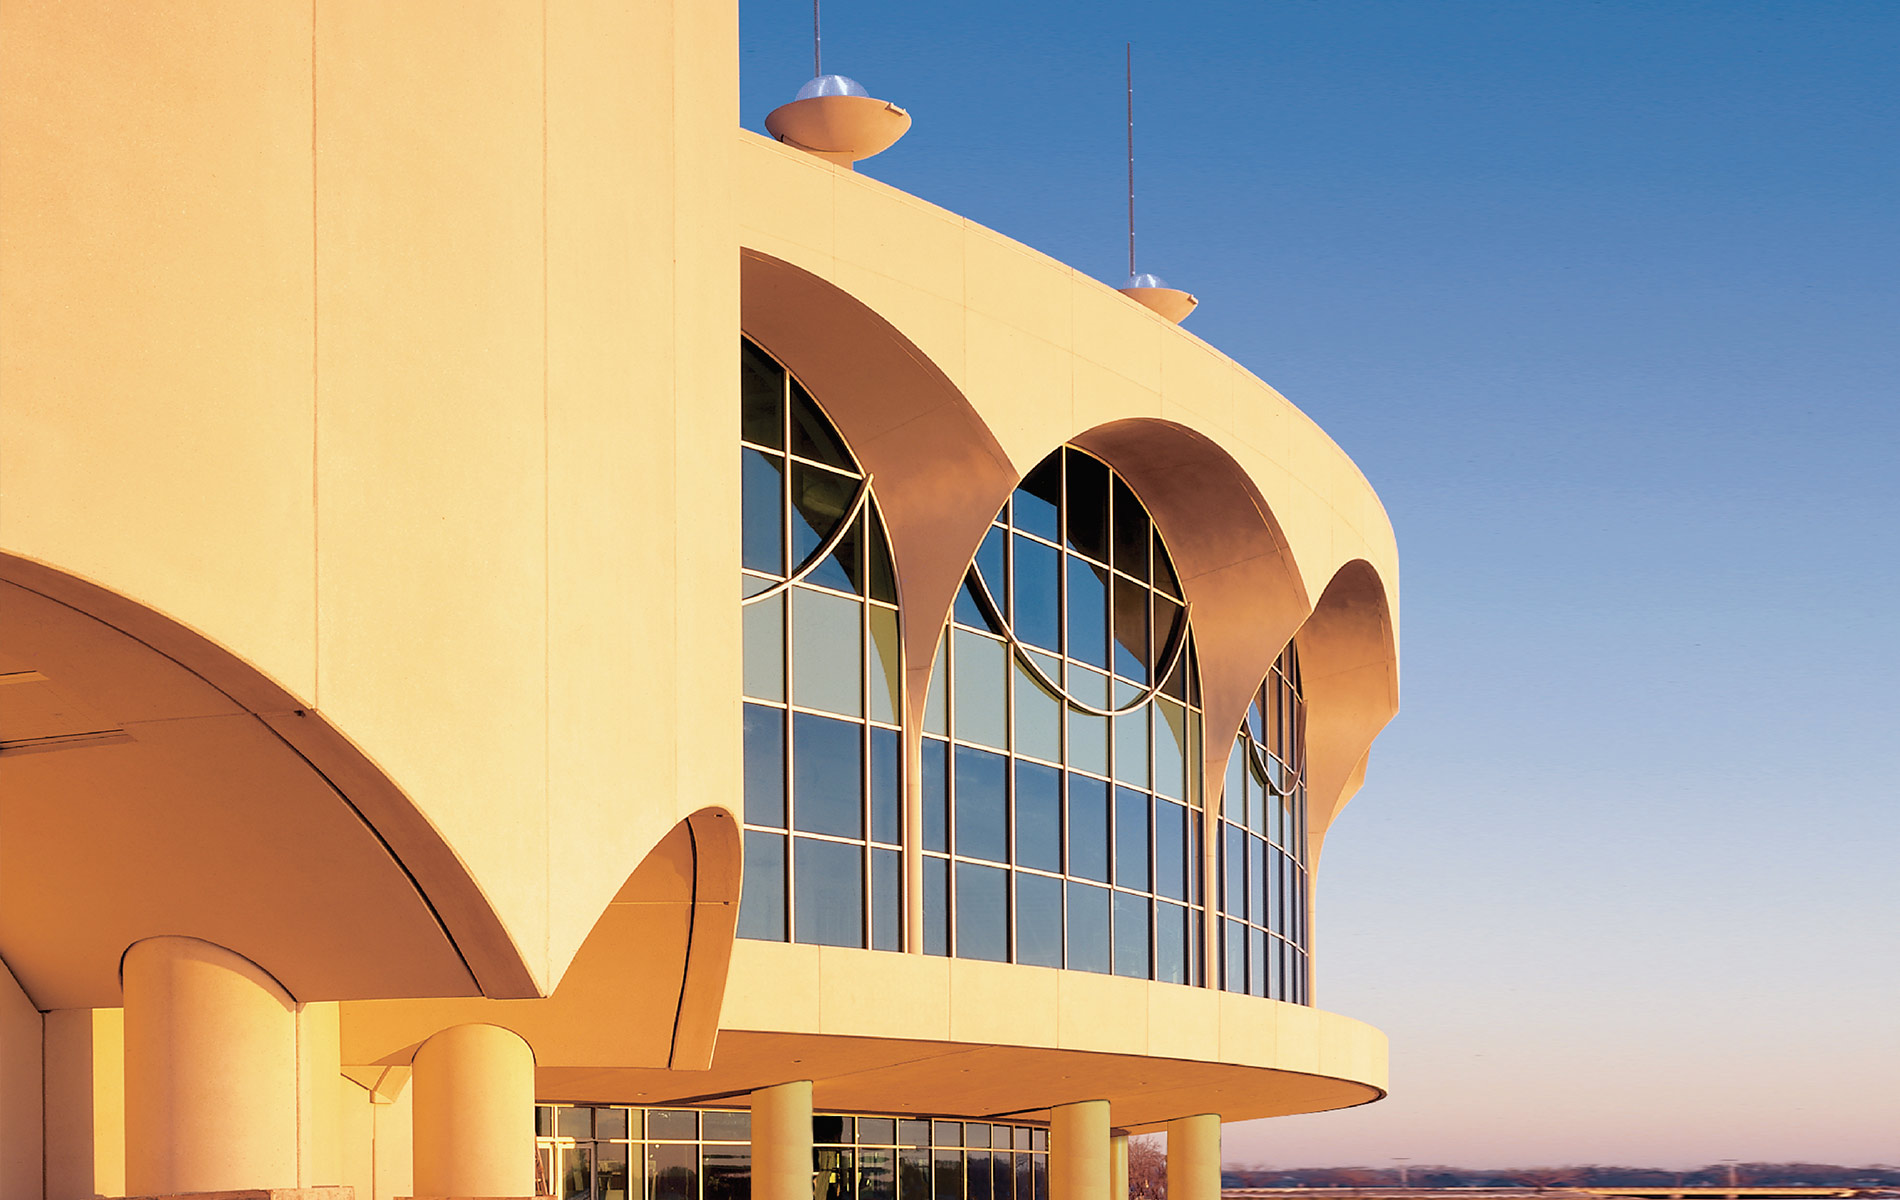 Monona Terrace in Madison Wisconsin designed by Frank Lloyd Wright architecture 1990s Home and Decor VIE 2017